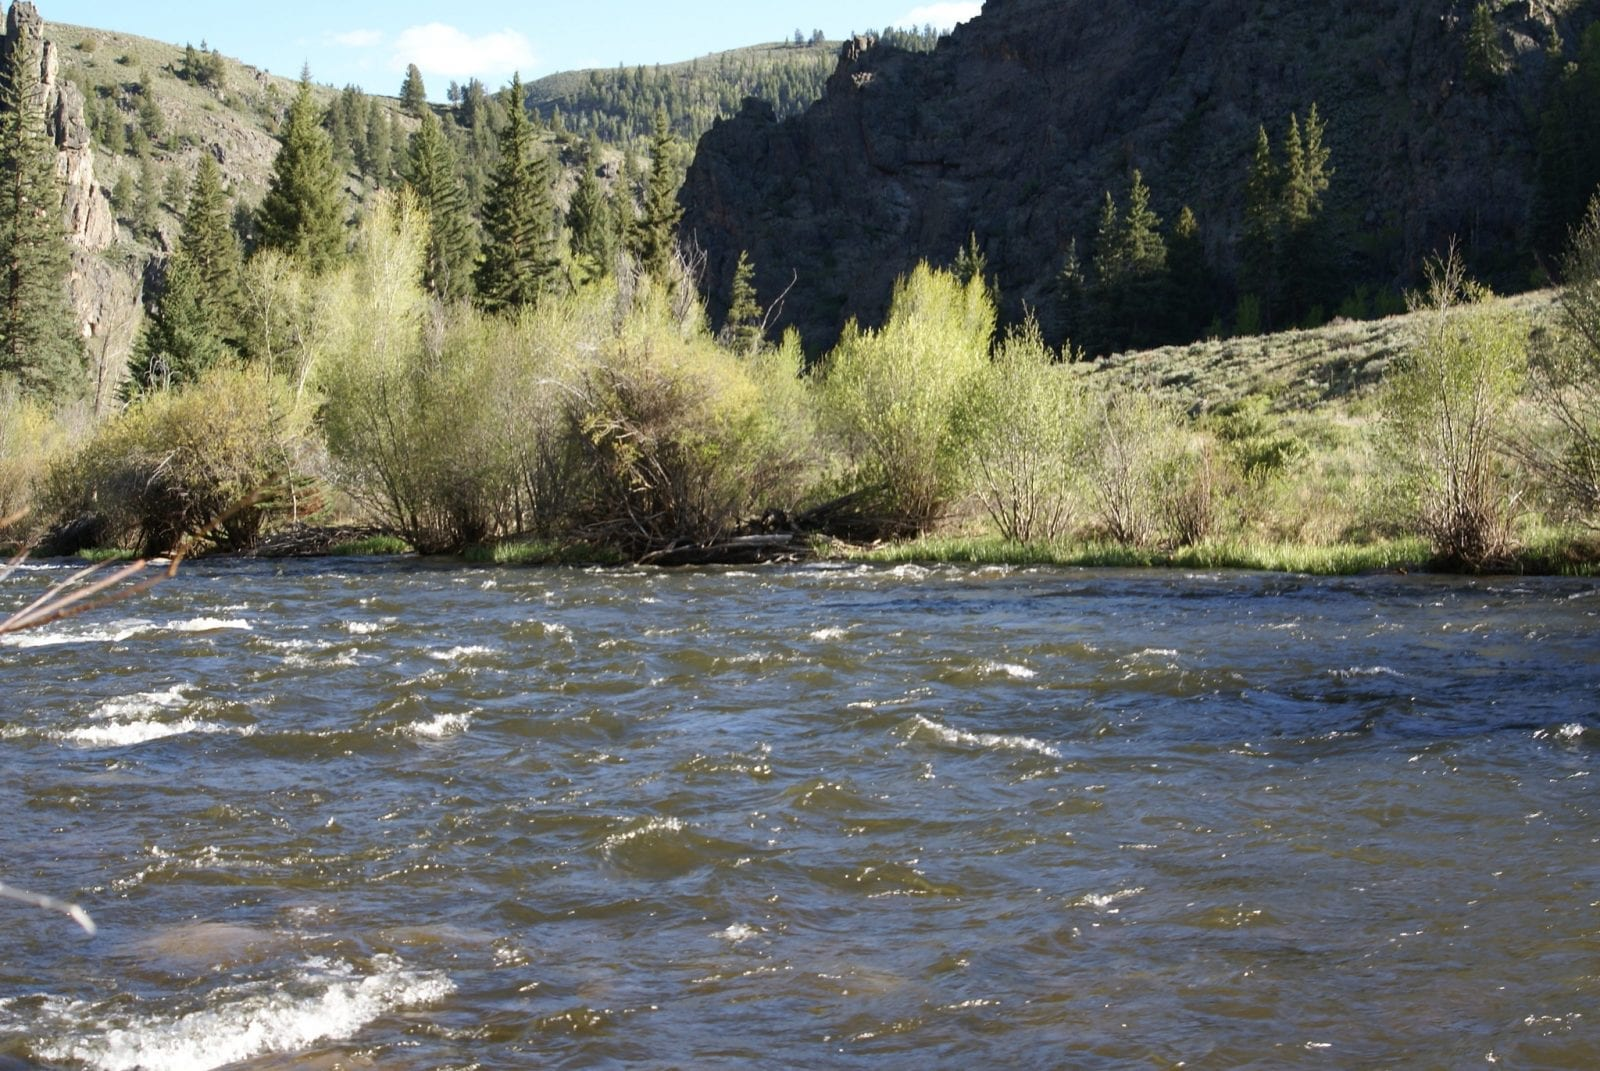 Image of the Taylor River near Almont